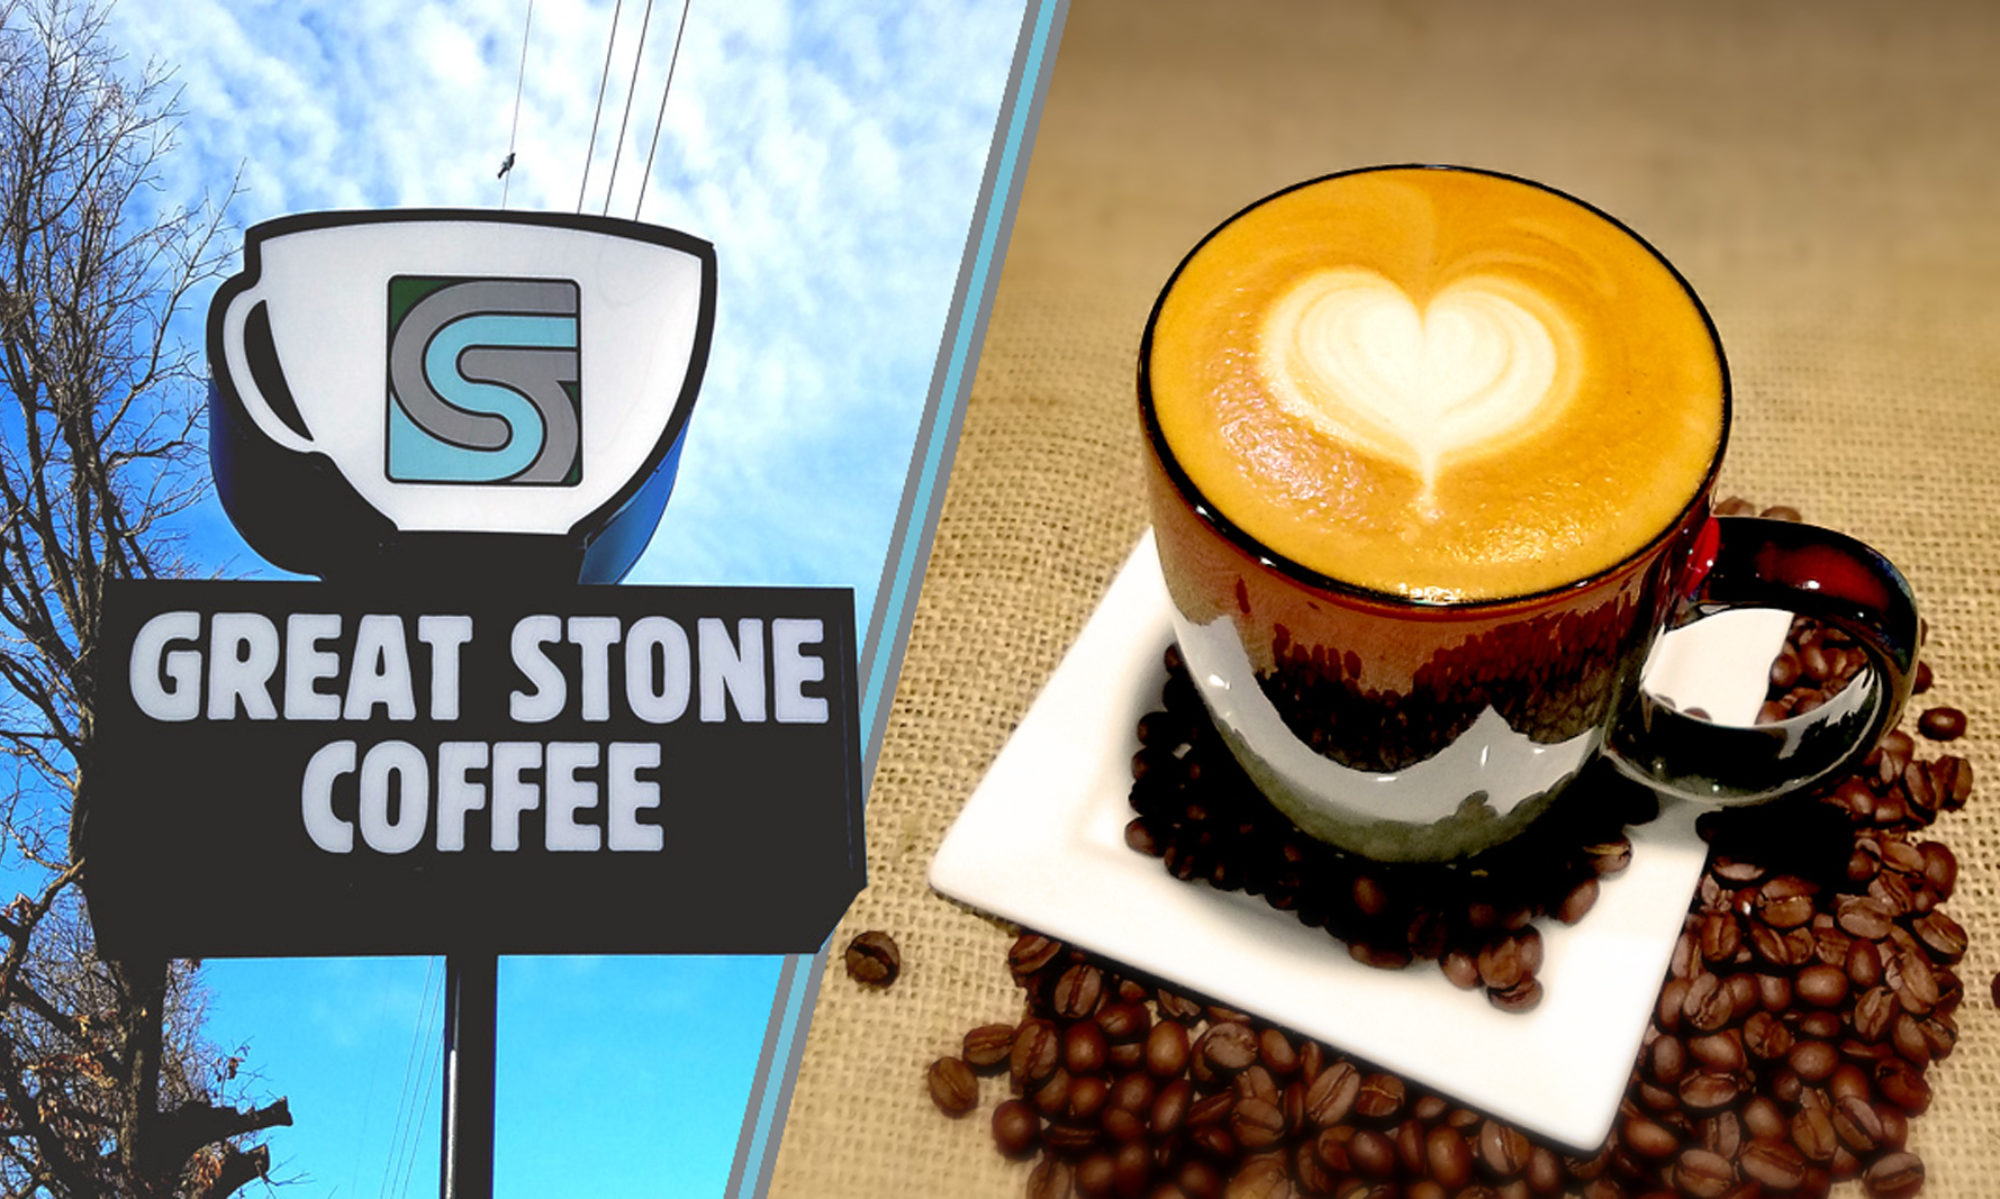 Great Stone Coffee